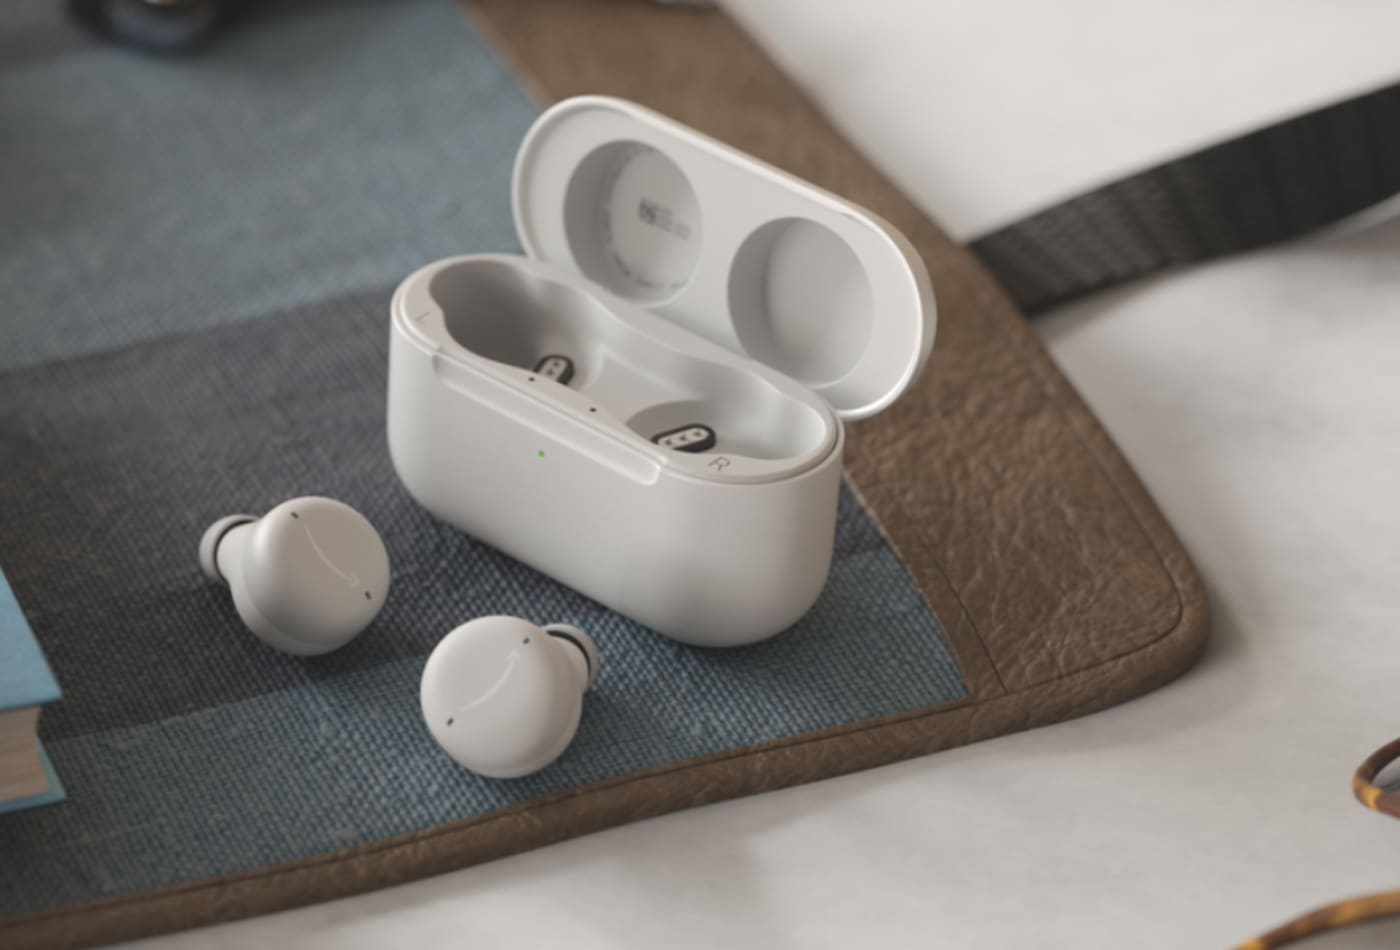 Amazon unveils new wireless earbuds that are smaller, cheaper and have better noise cancellation